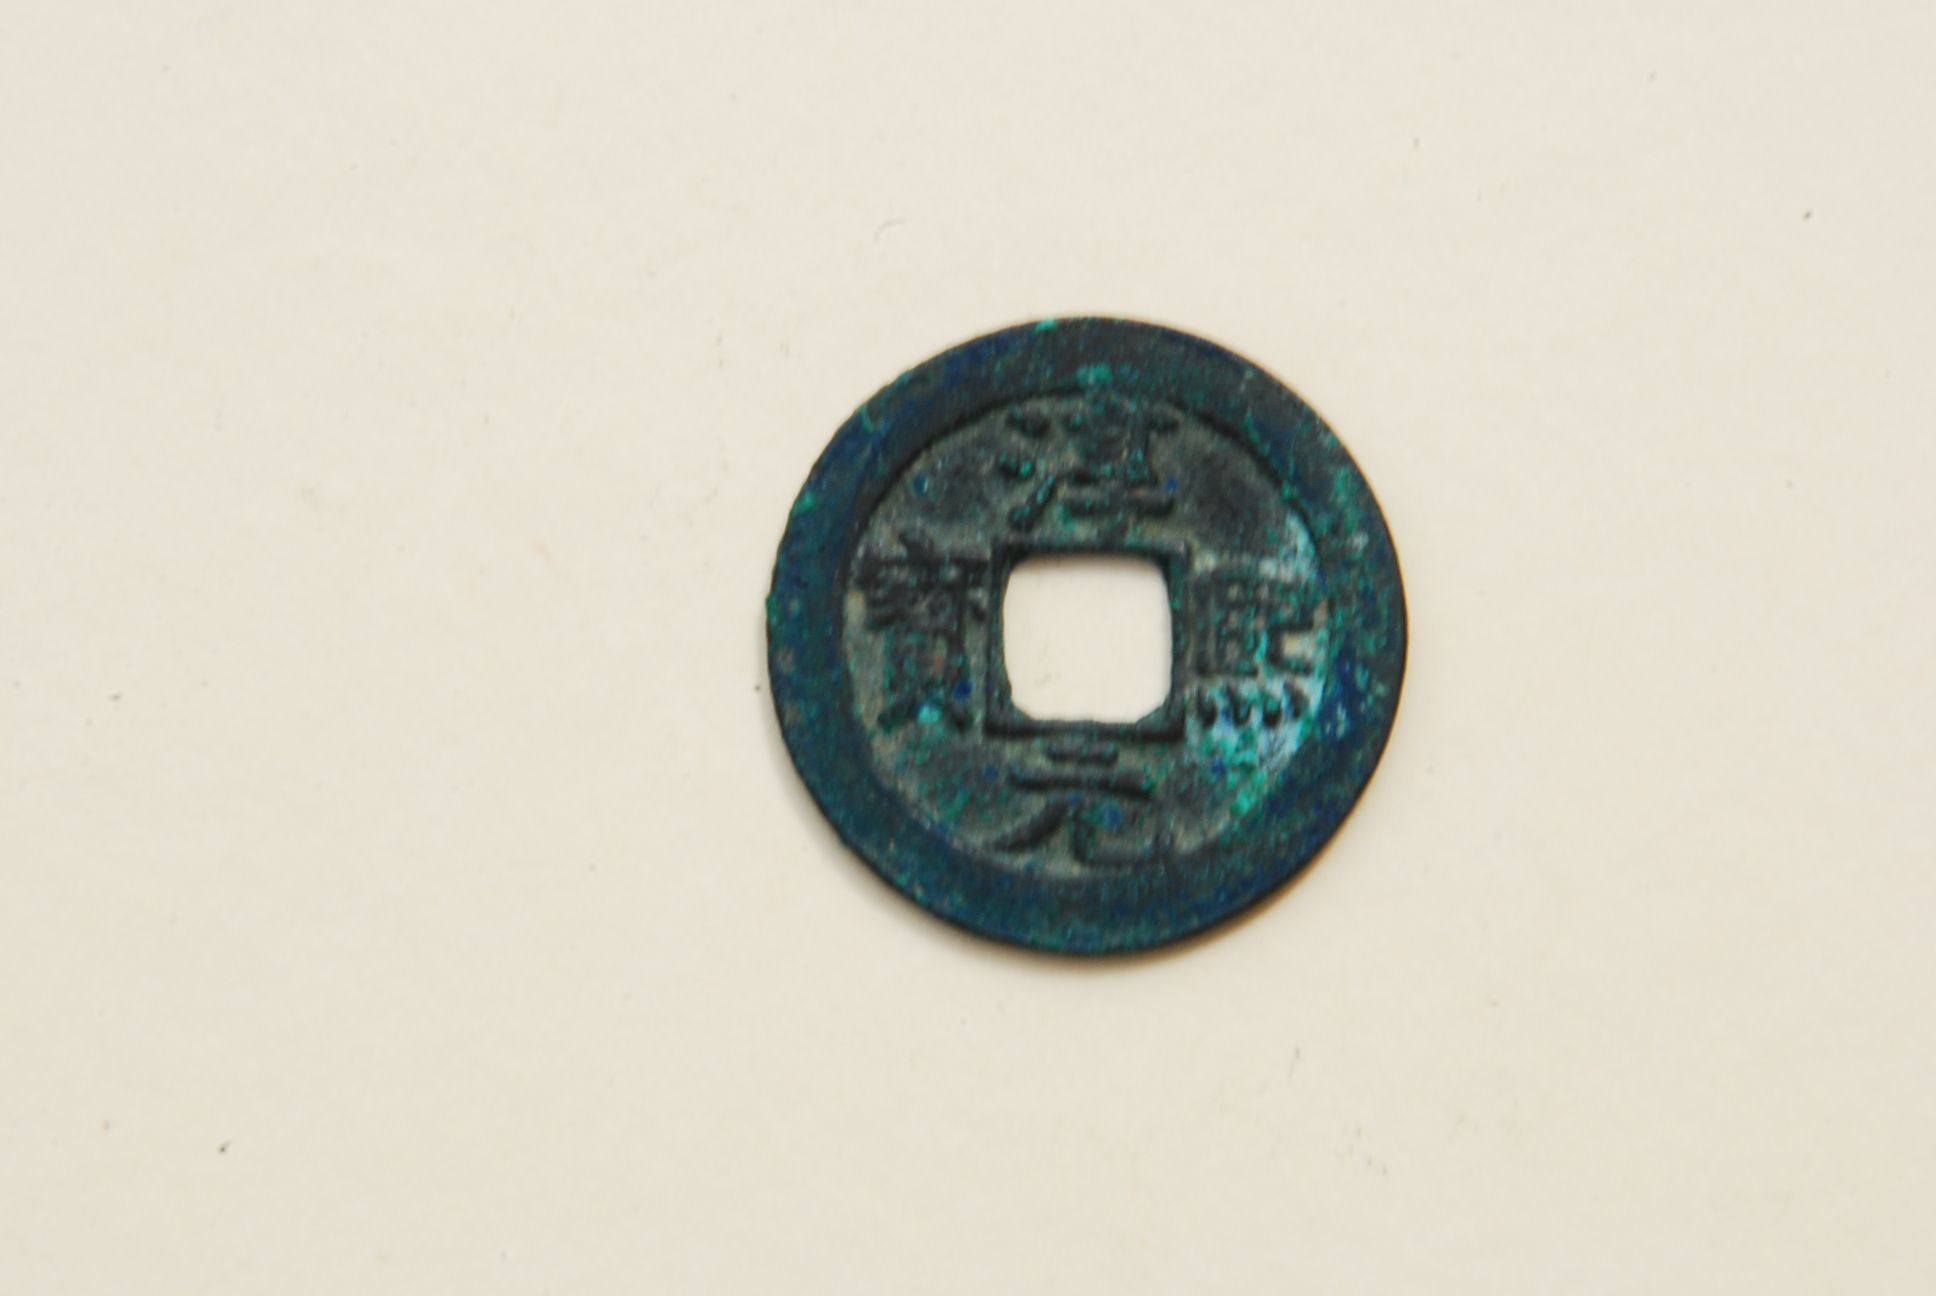 A 'Chun Xi Yuan Bao' (淳熙元寶) 1 cash coin with seal script, cast from 1174-1189 AD during the reign of Emperor Xiaozong (孝宗) (1162–1189 AD) of the Southern Song (南宋) Dynasty. The reverse side features 'crescent' above the hole and a 'star' below the hole . This coin is 24mm in size.   S-714.